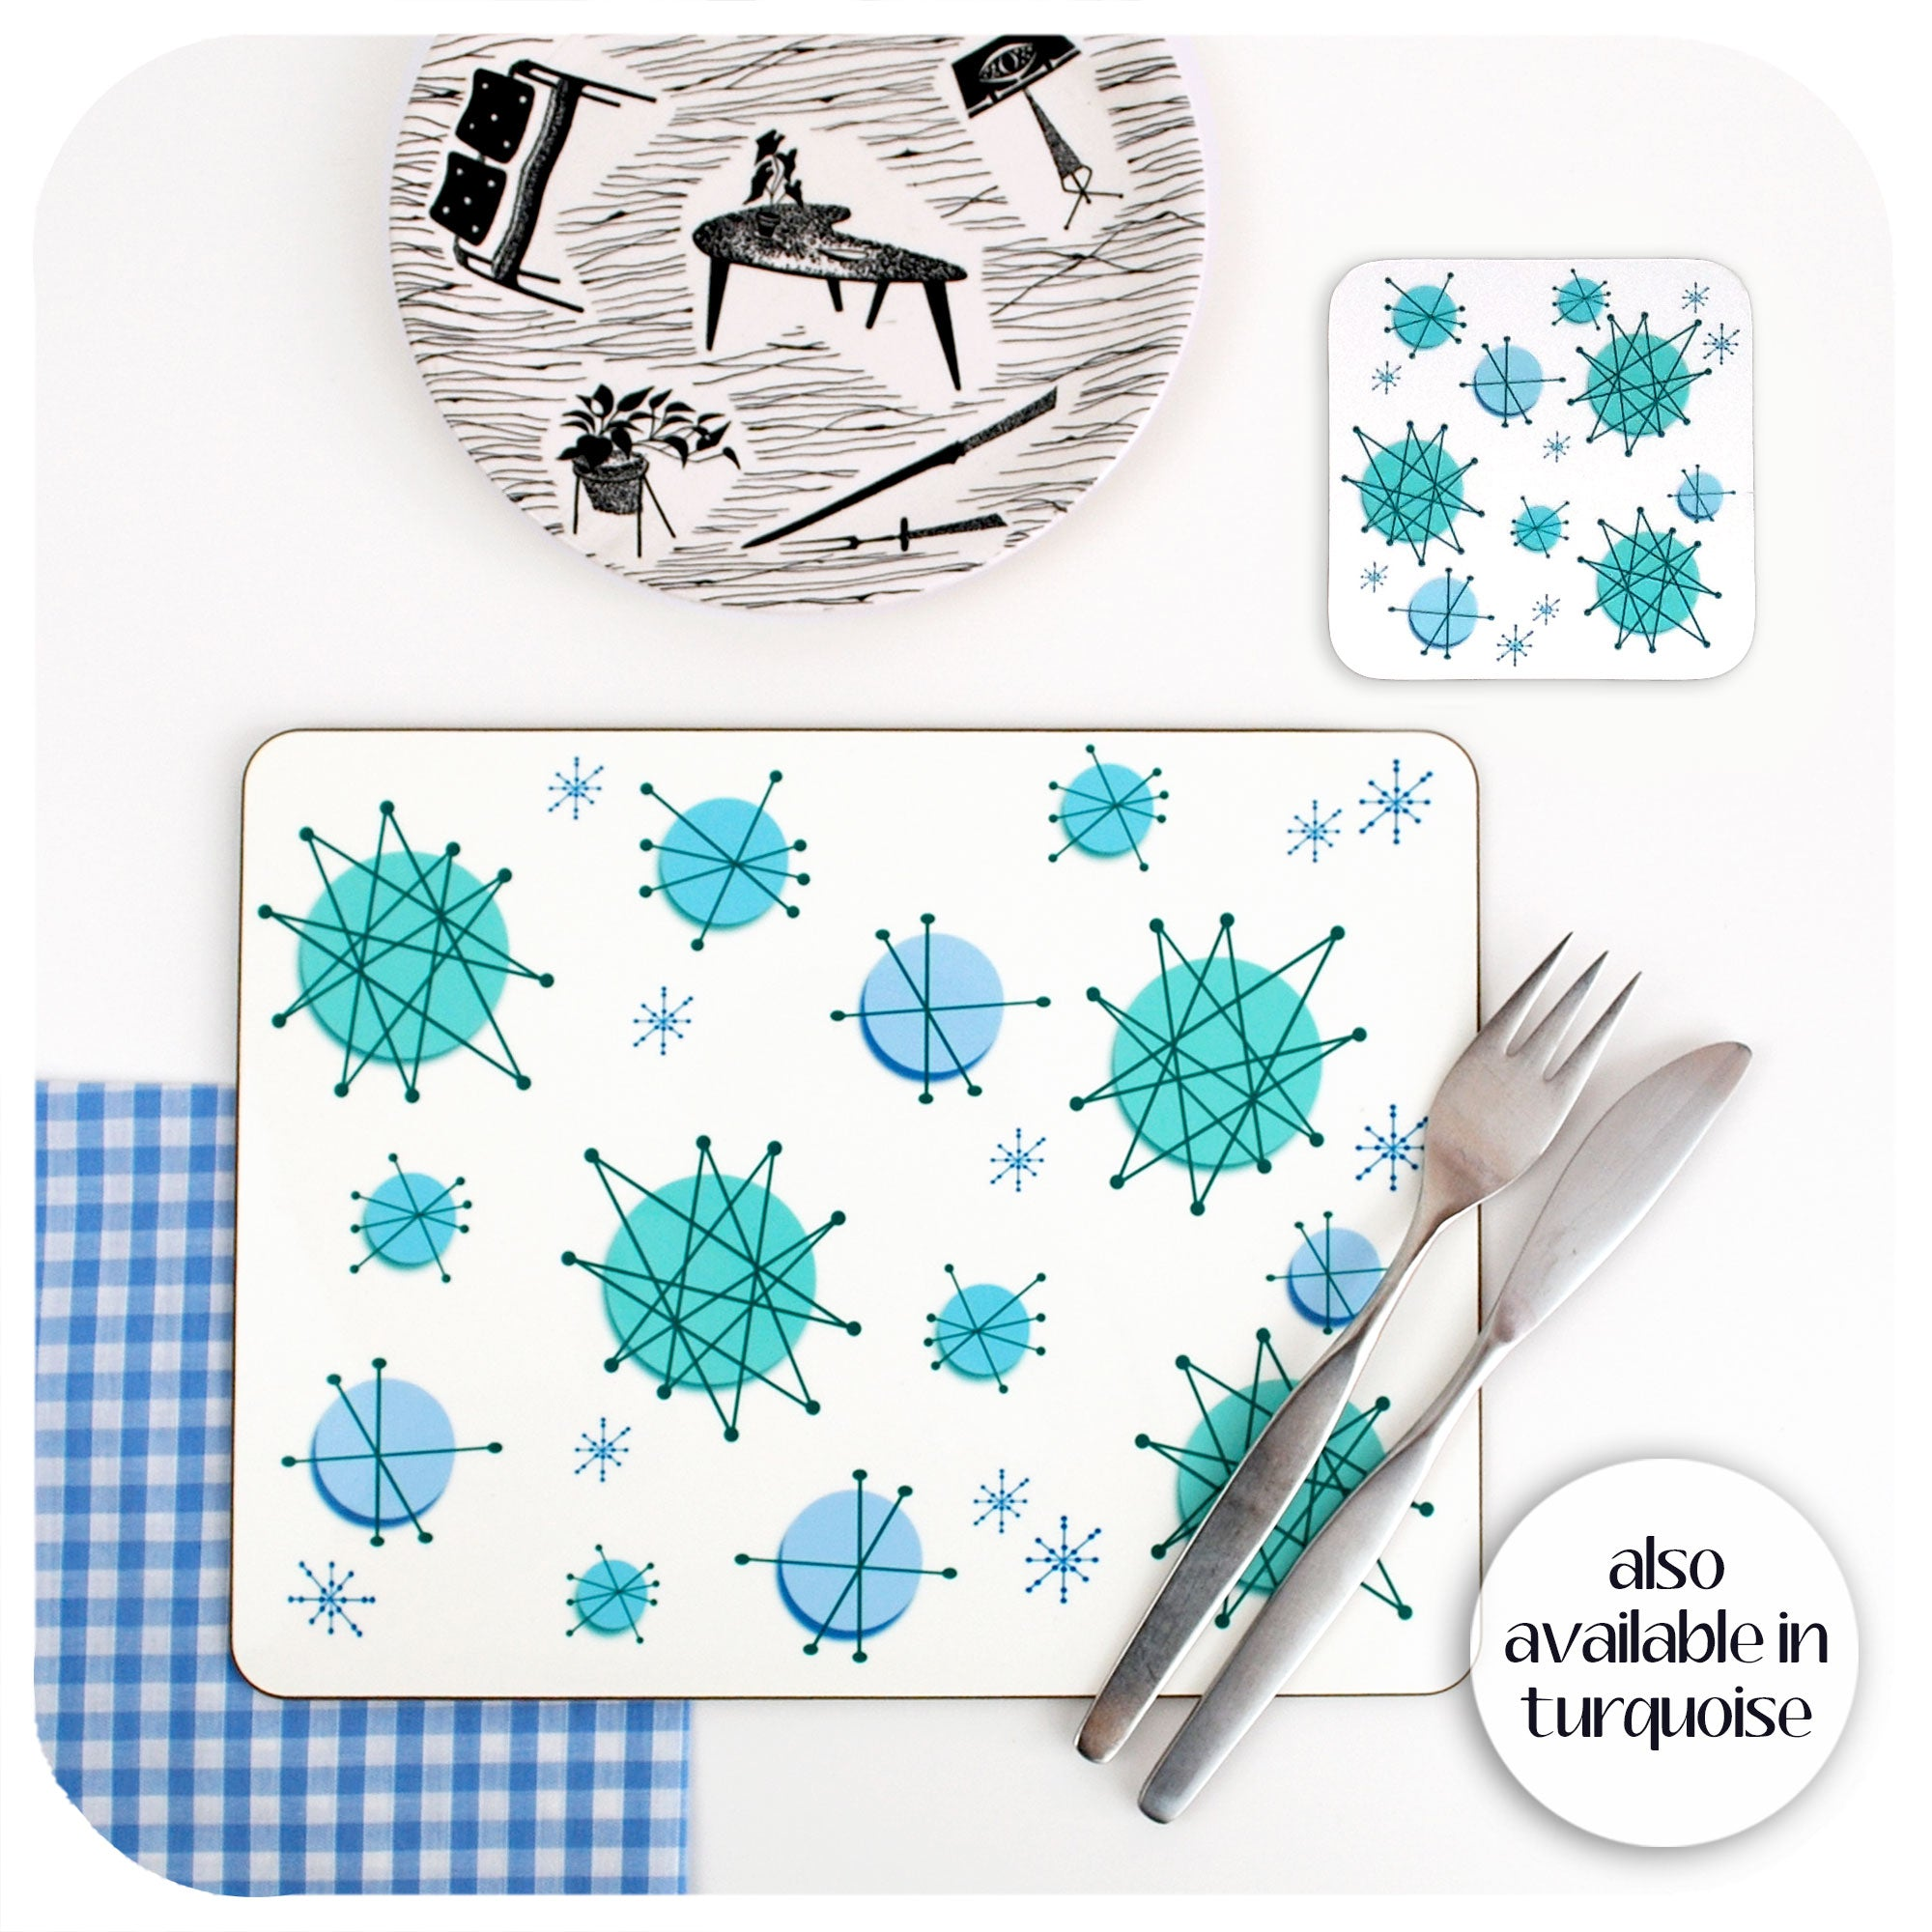 Turquoise Atomic Starburst Placemats and coasters available | The Inkabilly Emporium